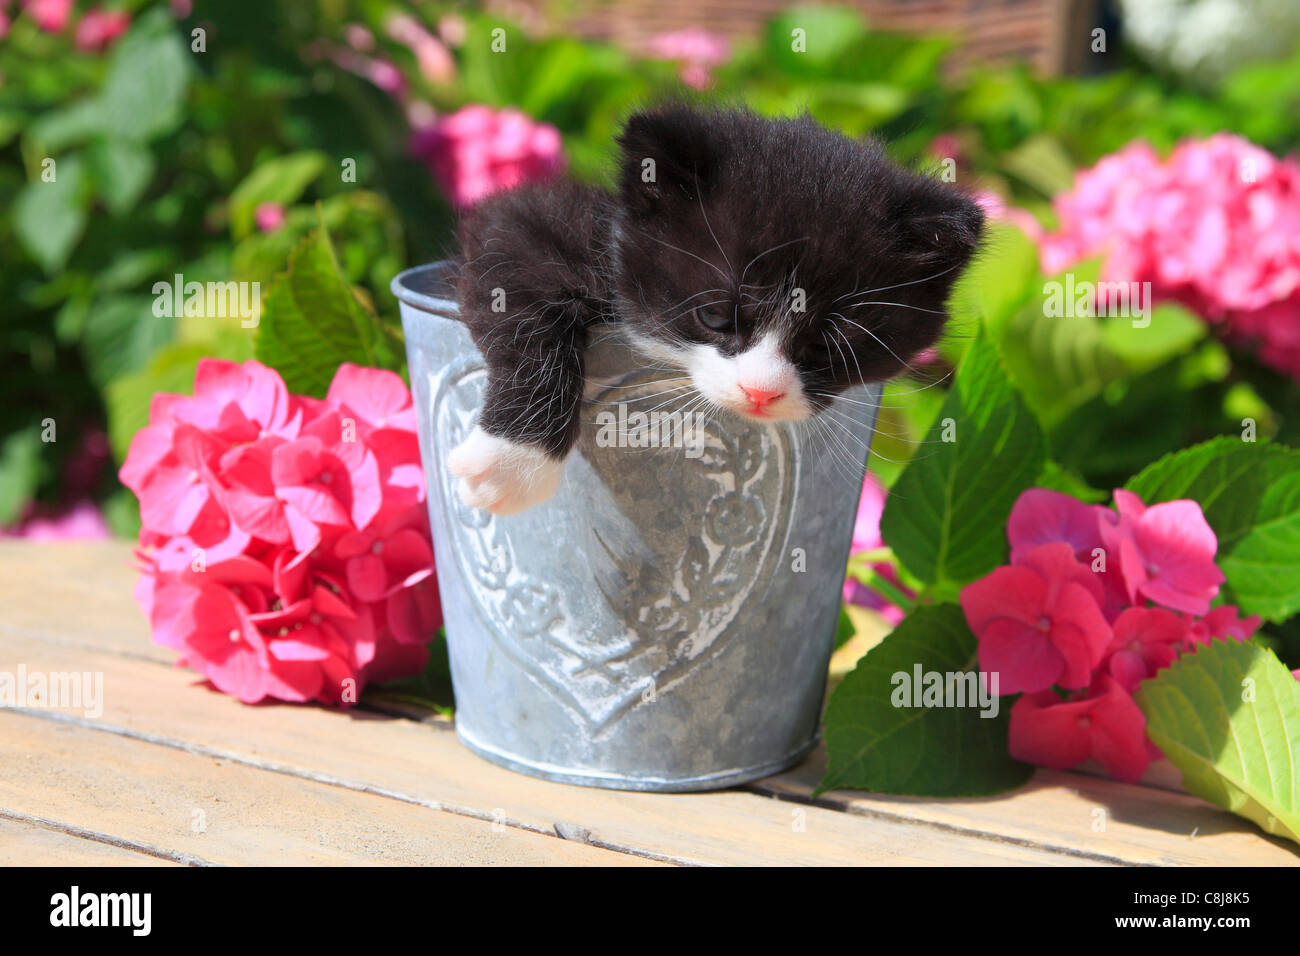 3 weeks, flower, flowers, garden, house, home, Animal, domestic animal, pet, young, cat, jug, kitten, vase, outdoors, - Stock Image